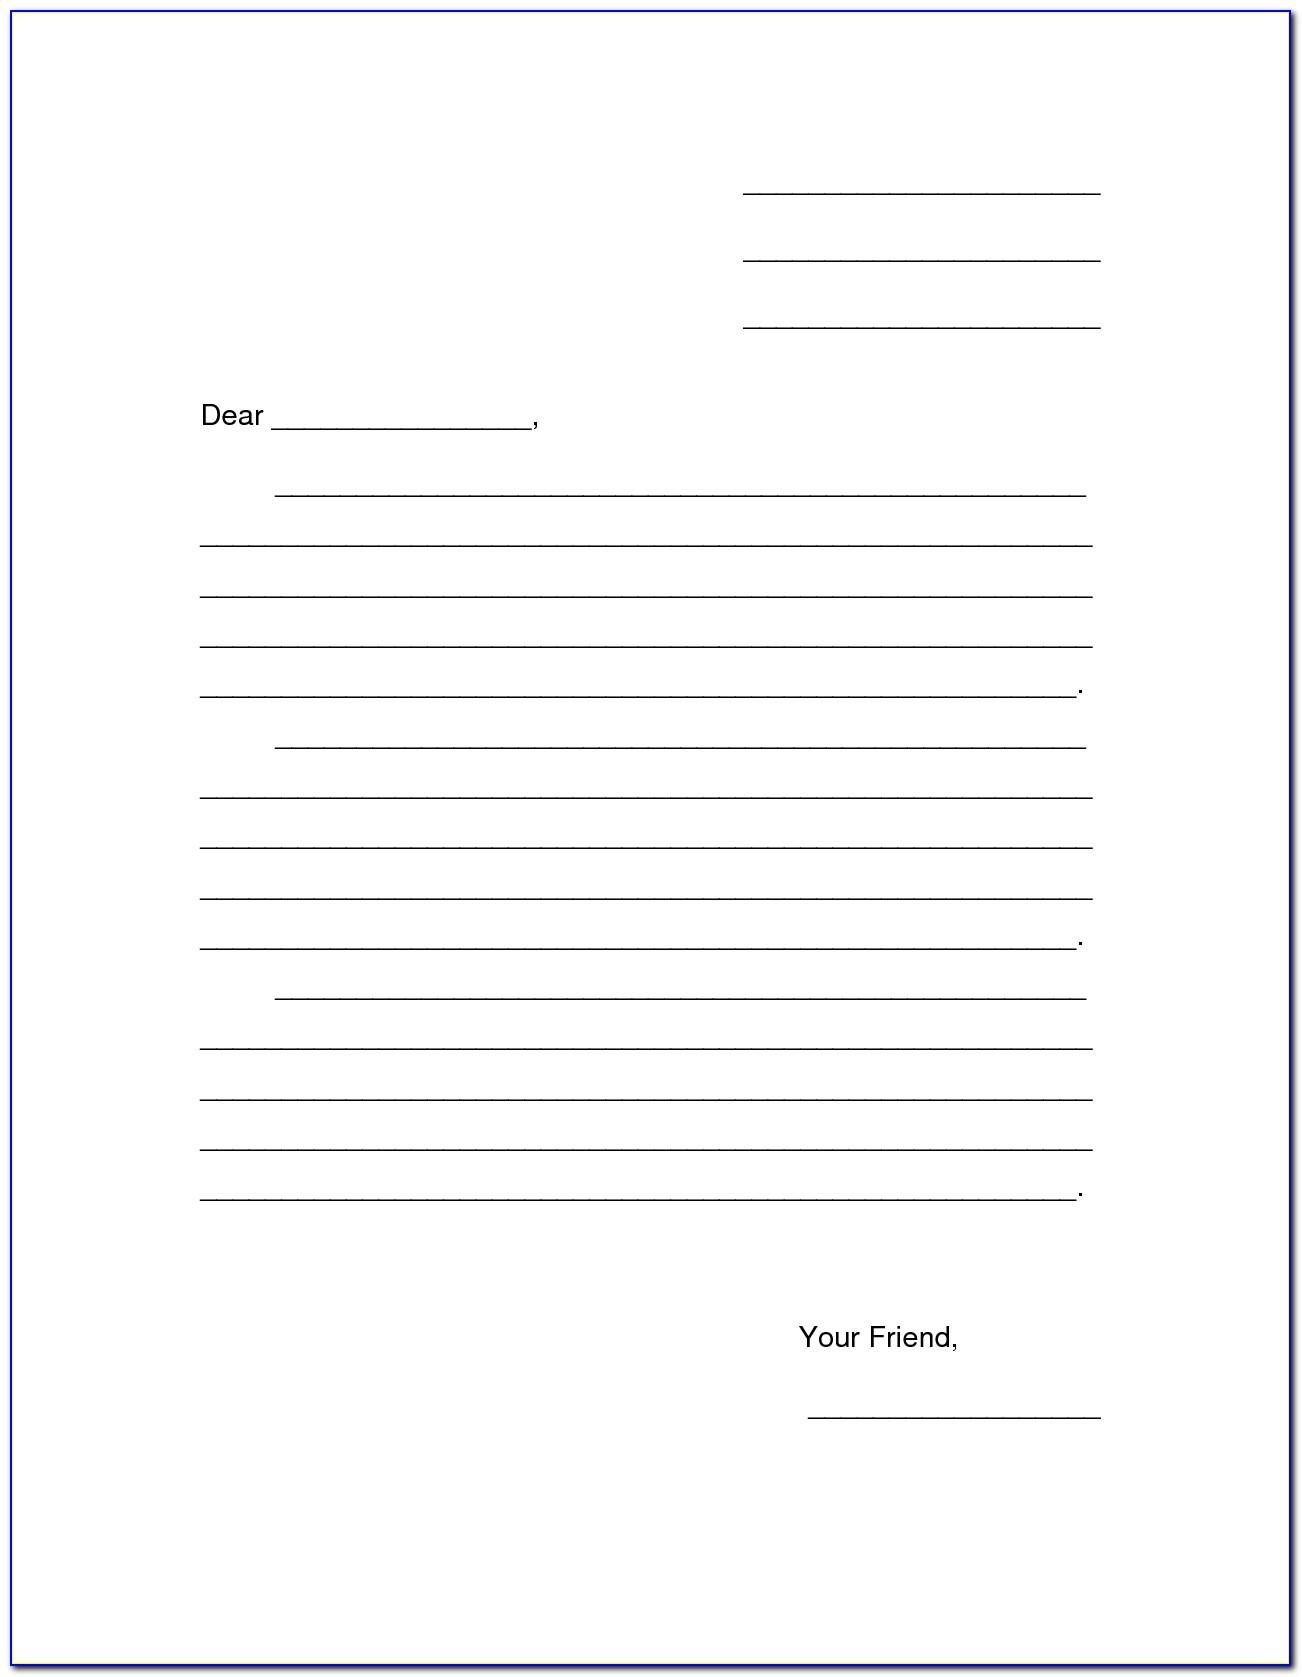 Blank Letter Template Free